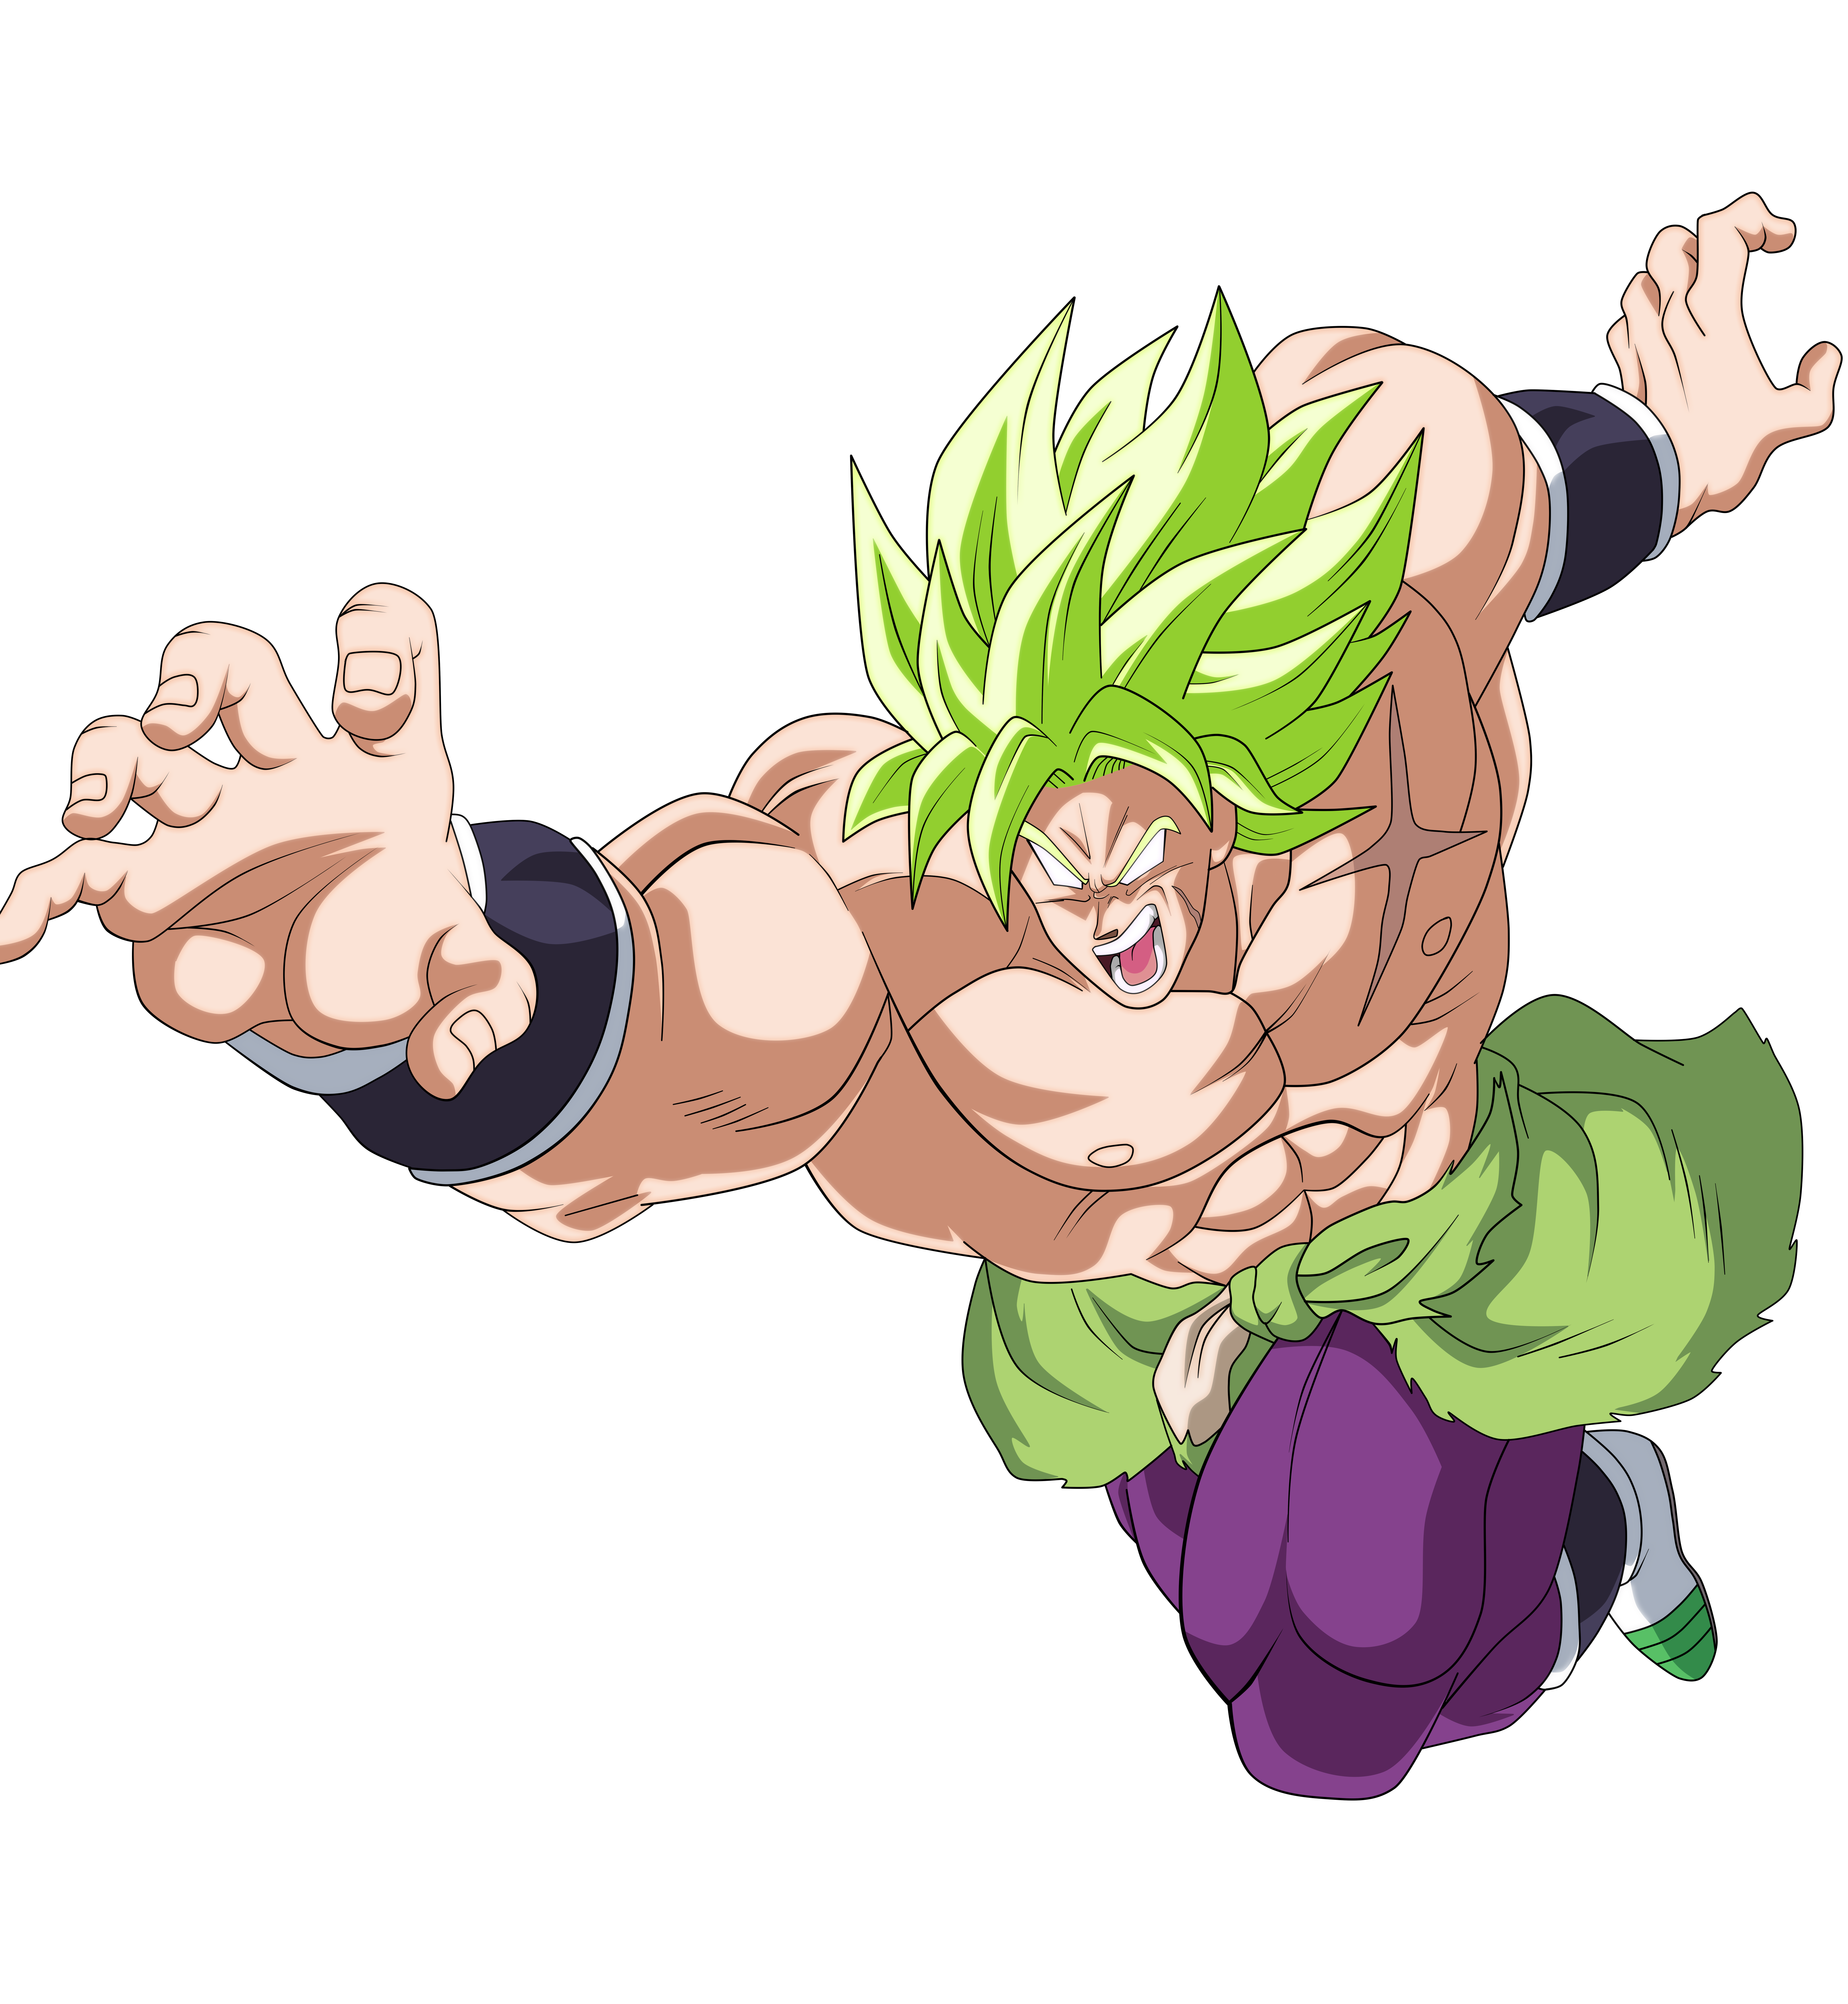 BROLY FULL POWER DRAGON BALL SUPER BROLY by AlejandroDBS